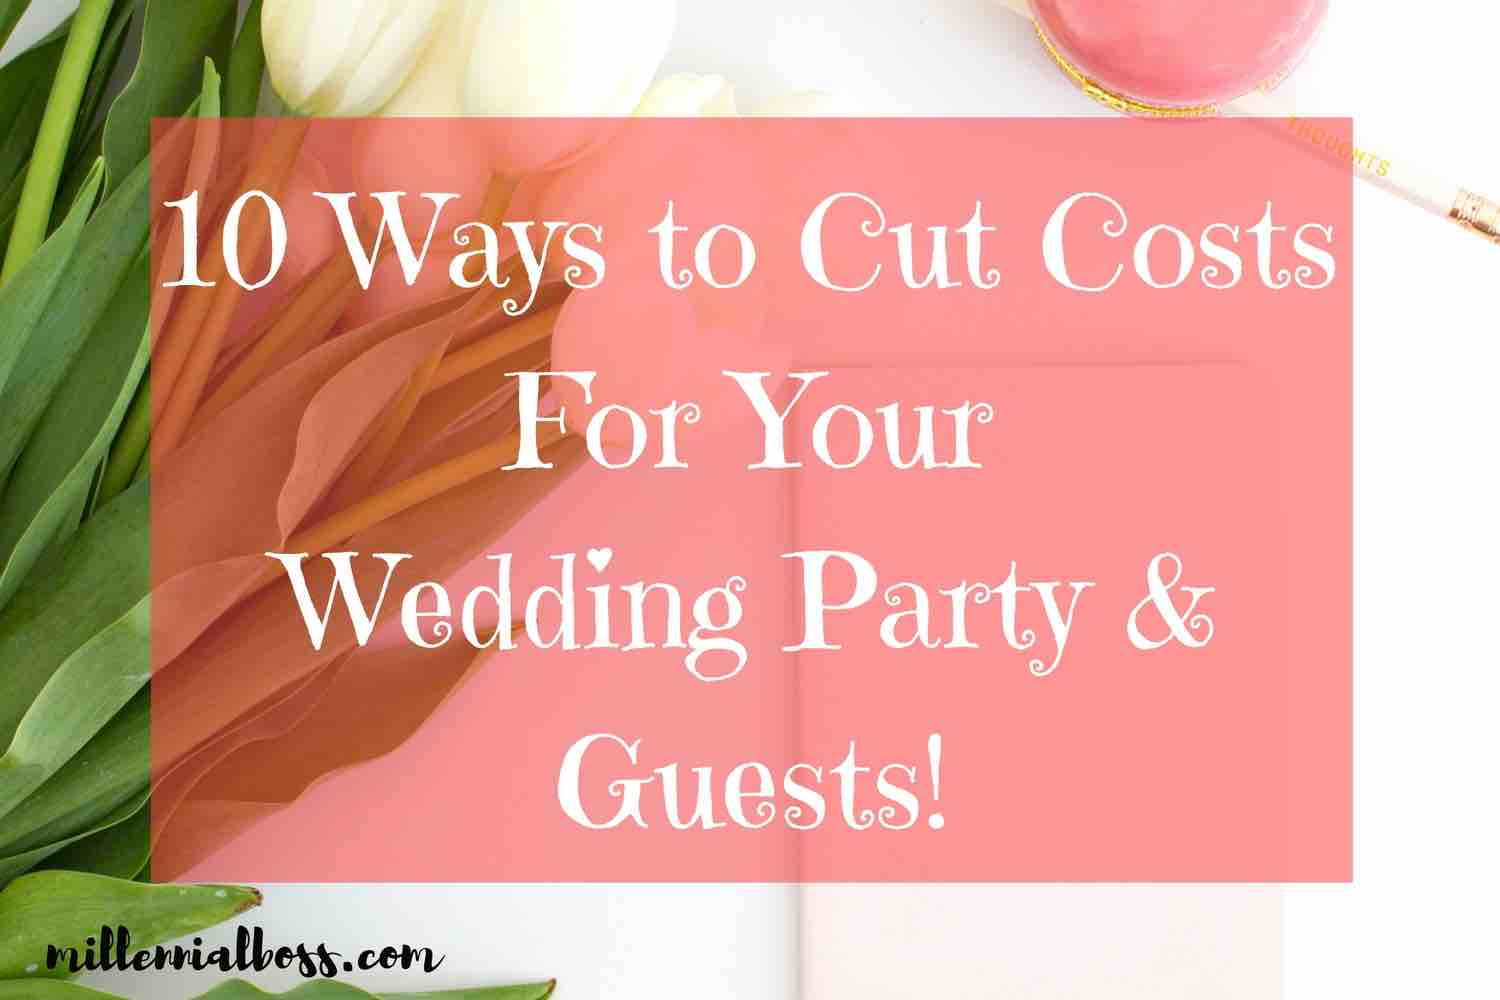 10 Ways to Minimize Costs for Guests, Bridesmaids and Wedding Party